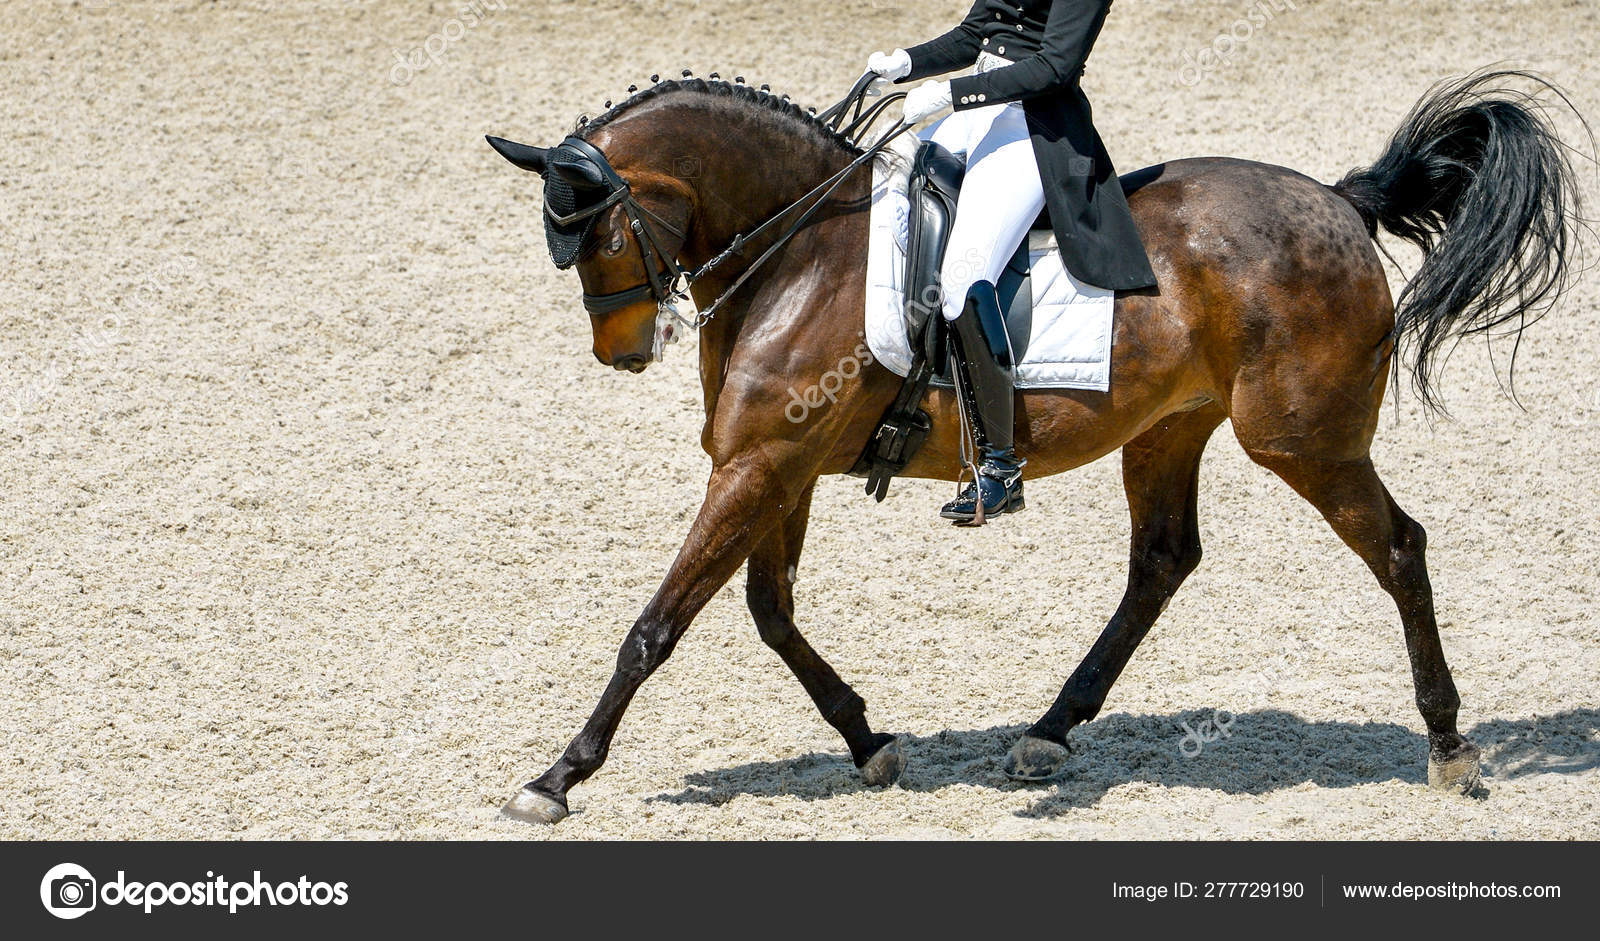 Dressage Horse Rider Black Uniform Beautiful Horse Portrait Equestrian Sport Stock Photo C Martanovak 277729190